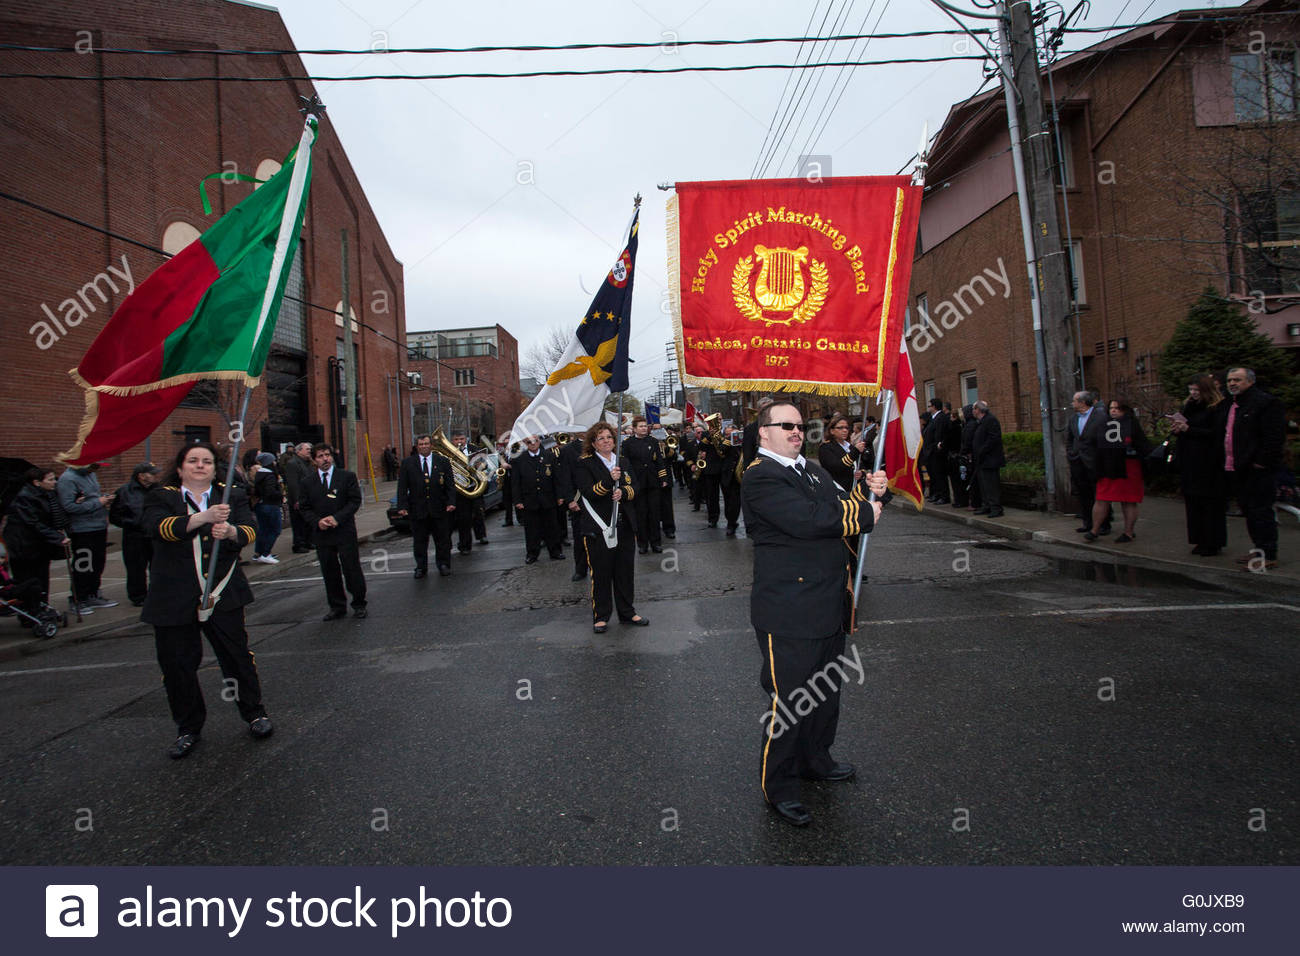 Toronto canada st may holy spirit marching band from